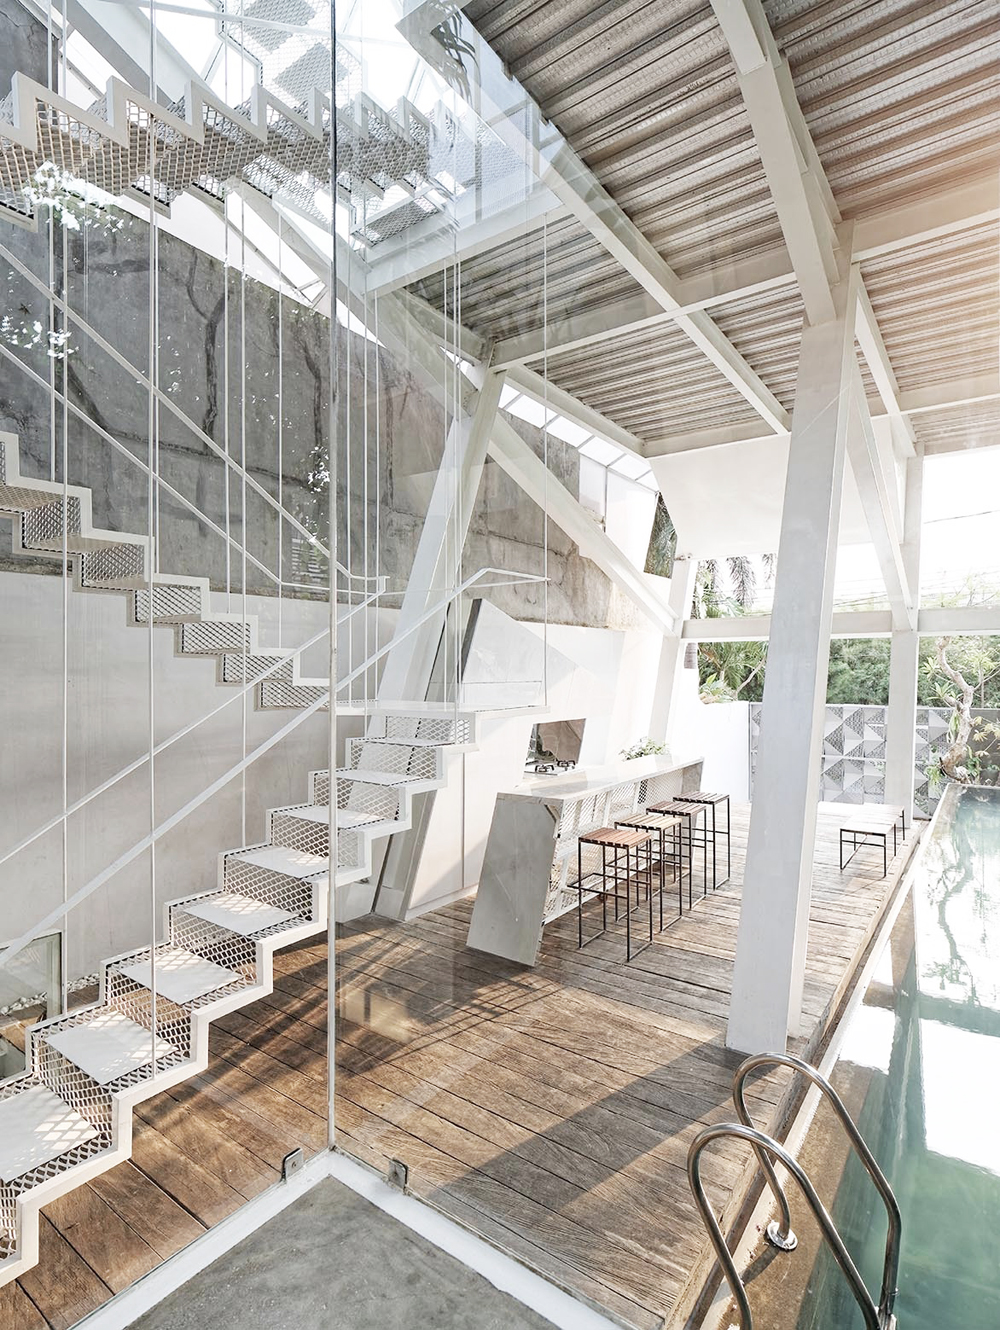 Oracle, Fox, Sunday, Sanctuary, Upside, White, Glass Bedroom, Interior, Architecture, Indoor, Pool, Staircase